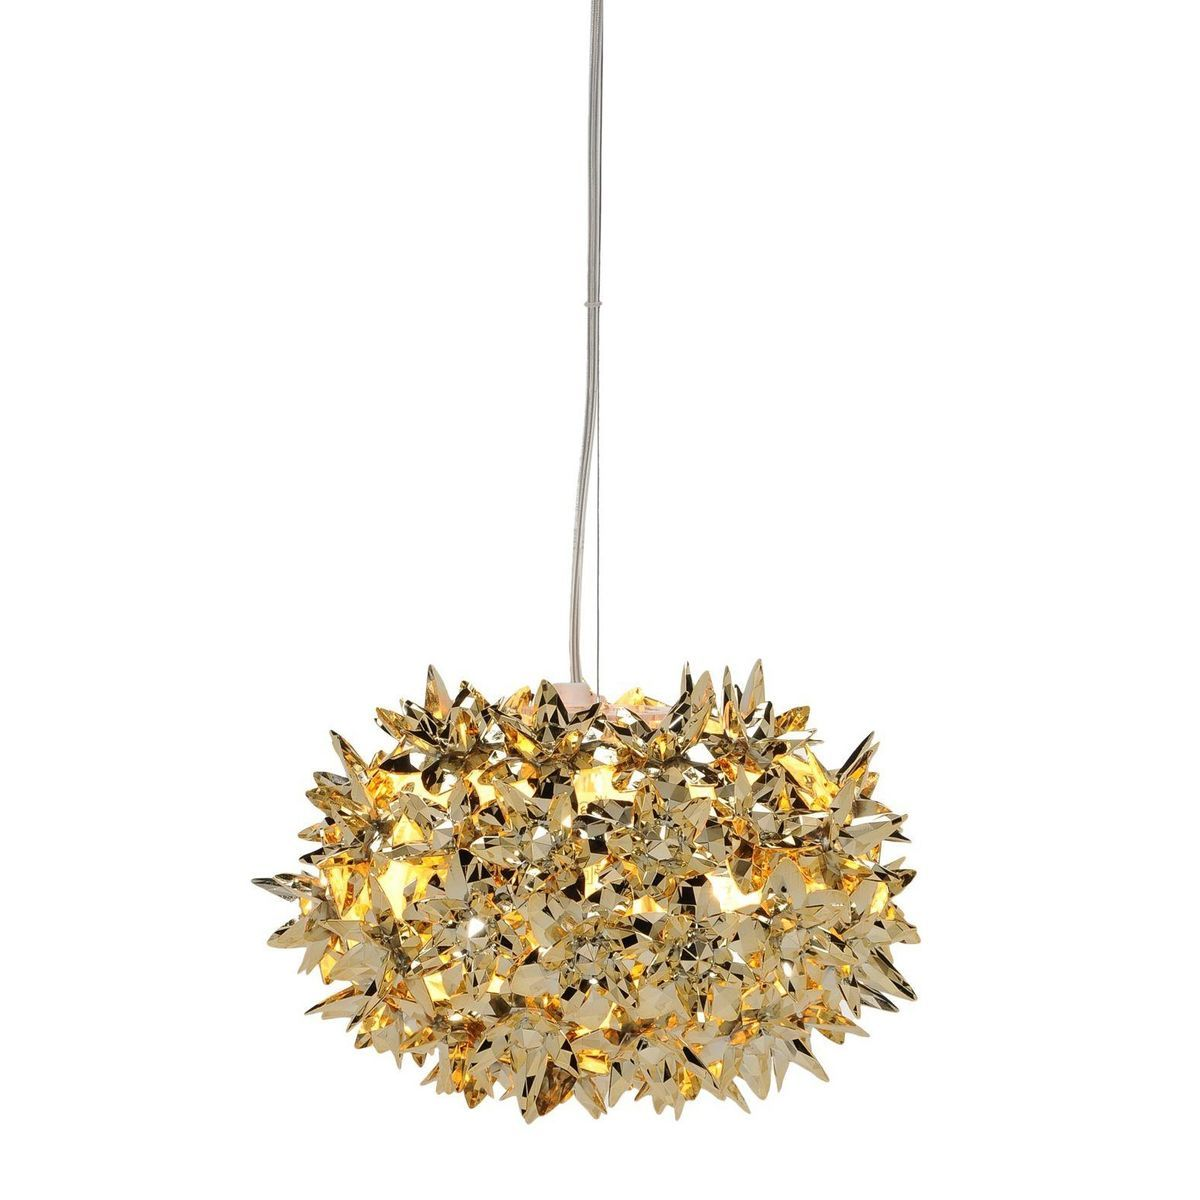 kartell bloom metallic ball s2 suspension lamp 28cm goldglossy bloom lamp gold ferruccio laviani